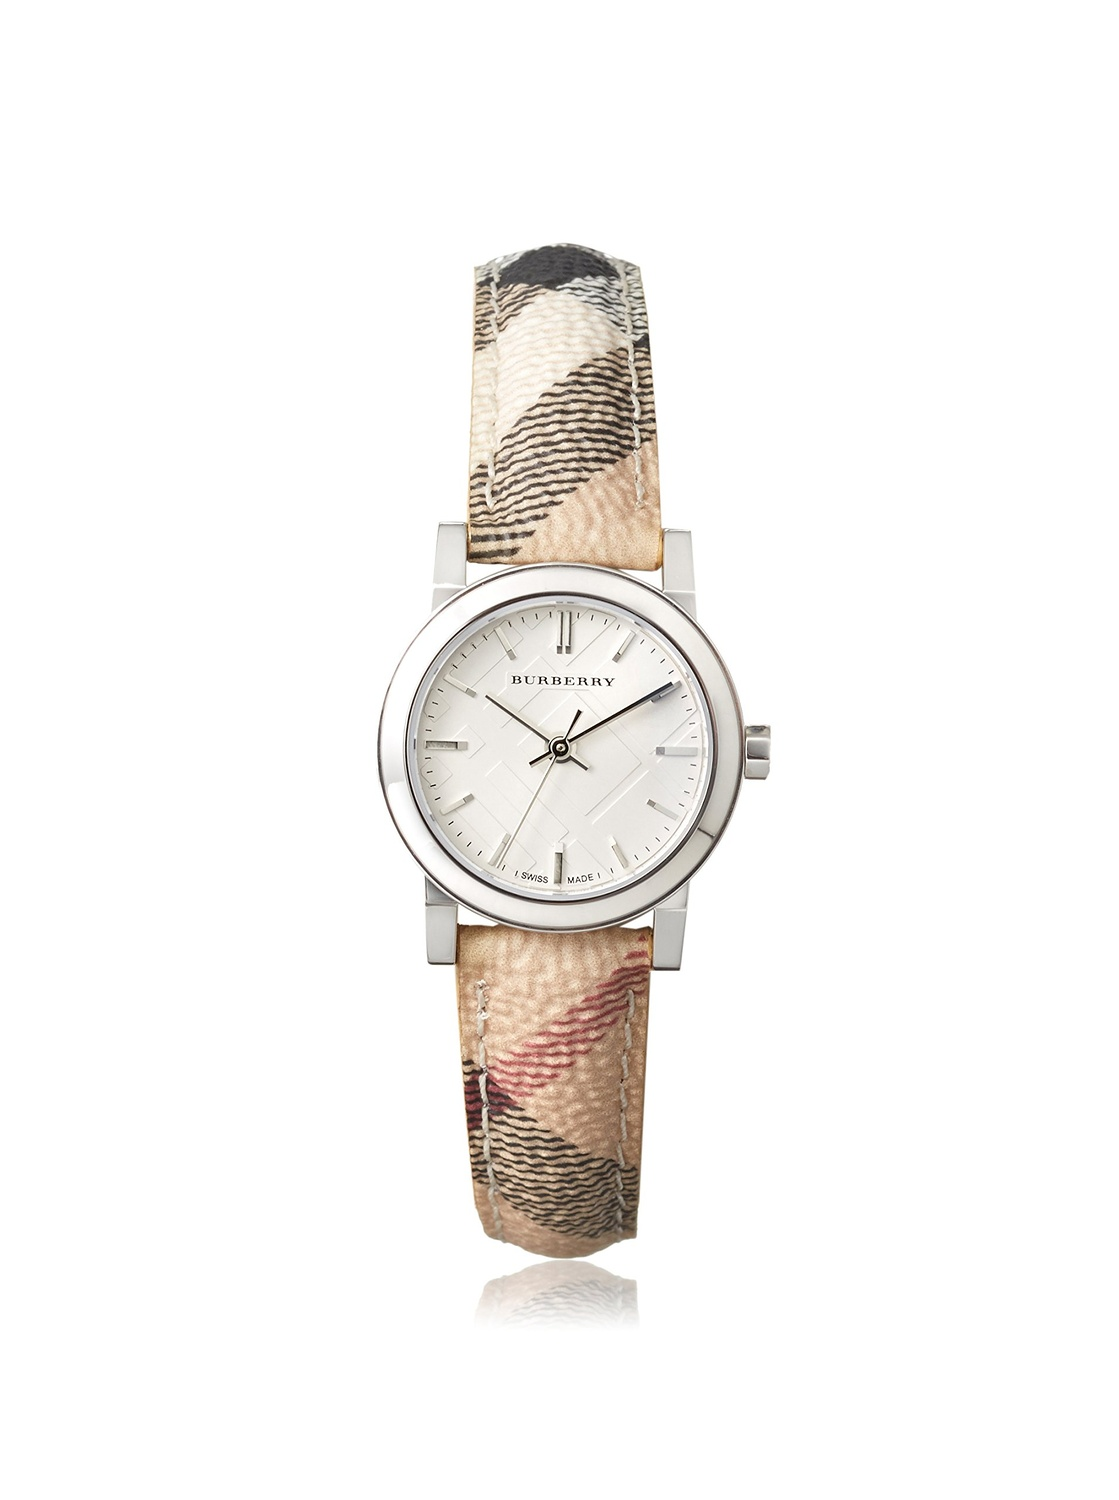 Burberry watches for women model